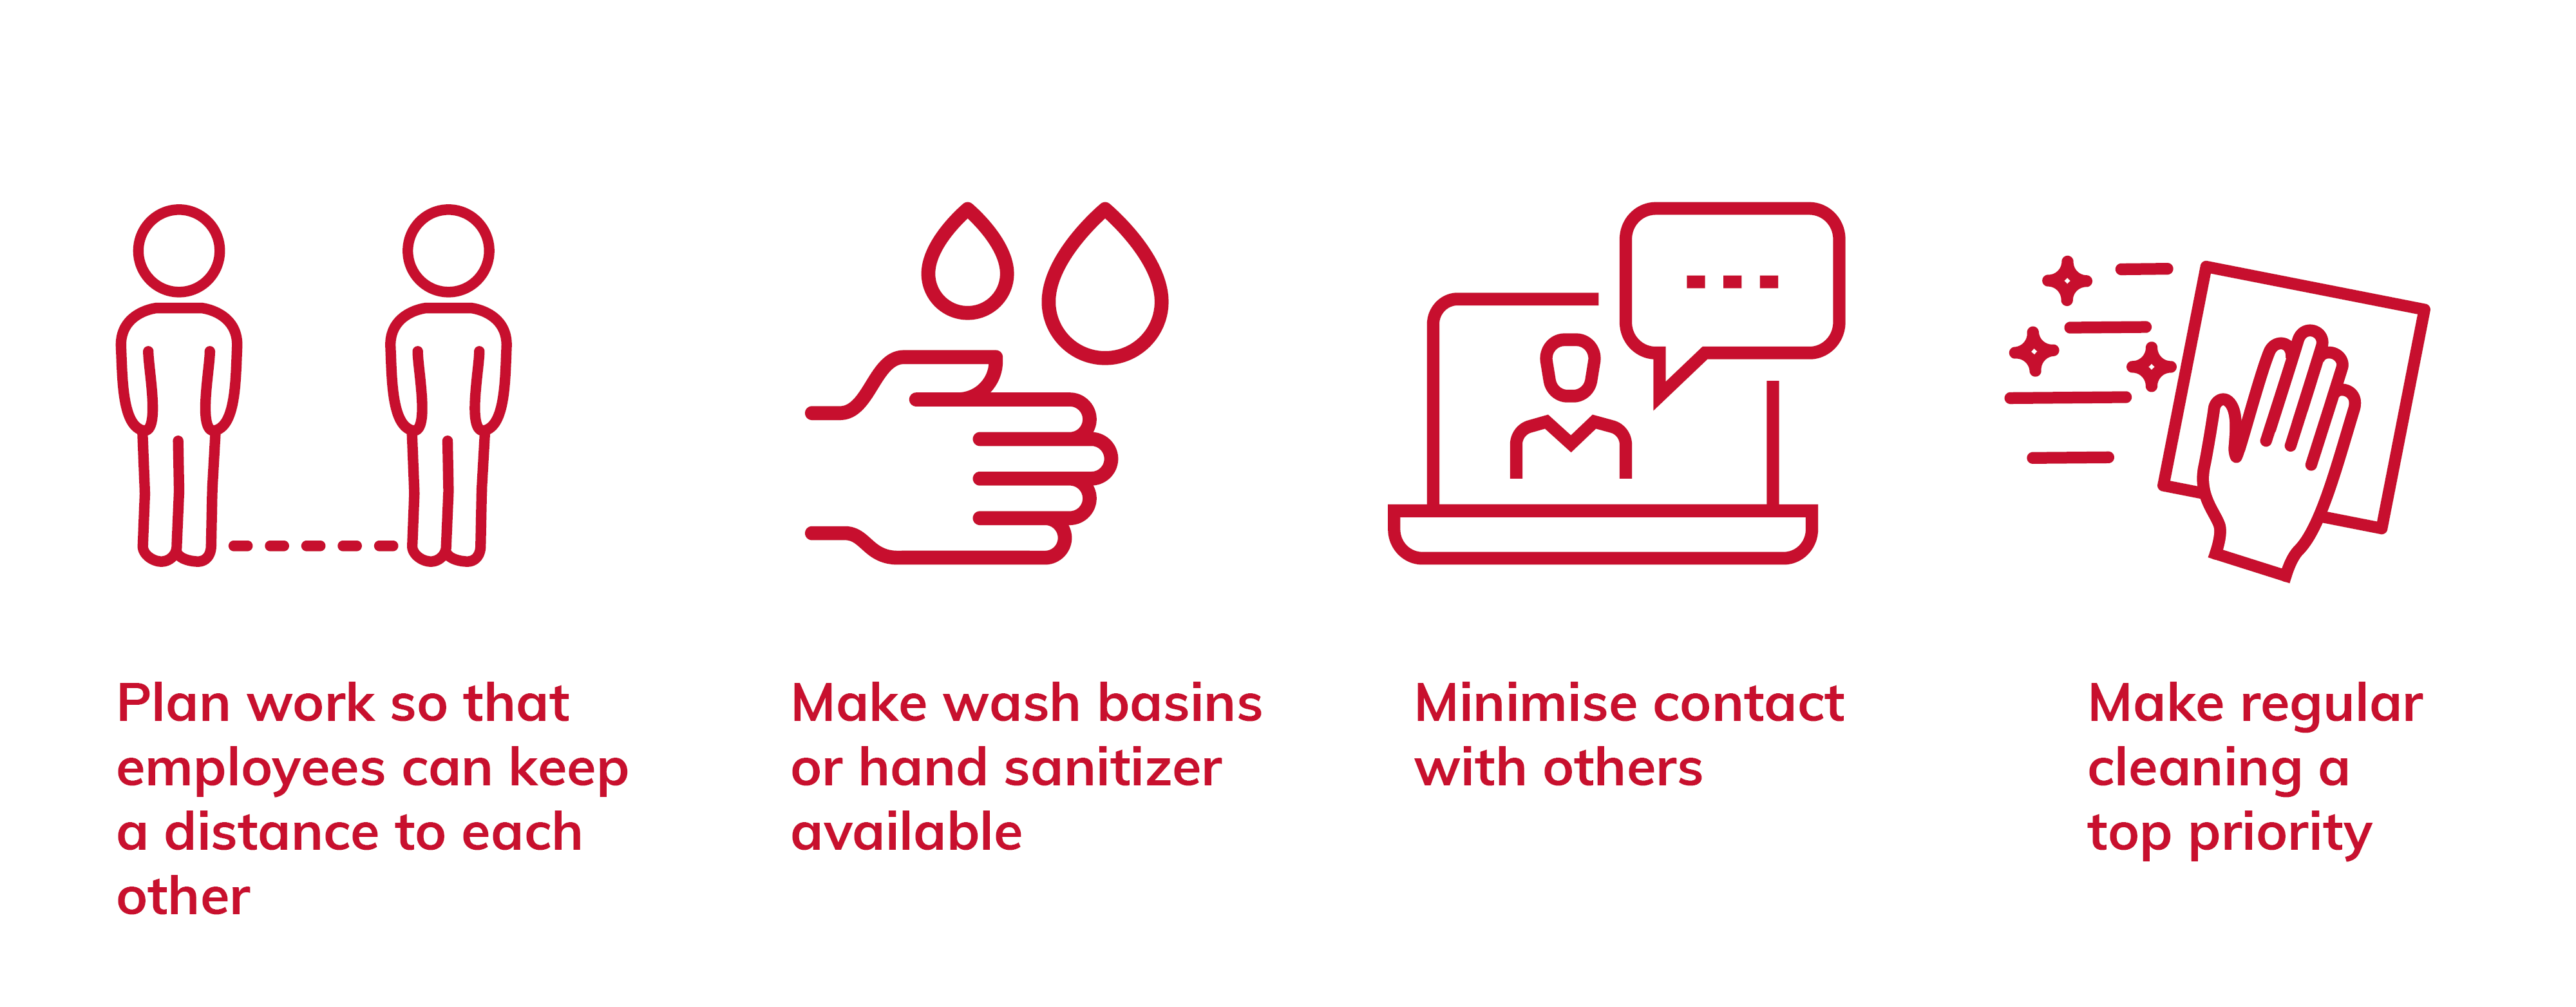 Plan work sp that employees can keep a distance to each other. Make wash basins or hand sanitizer available. Minimise contact with others. Make regular cleaning a top priority